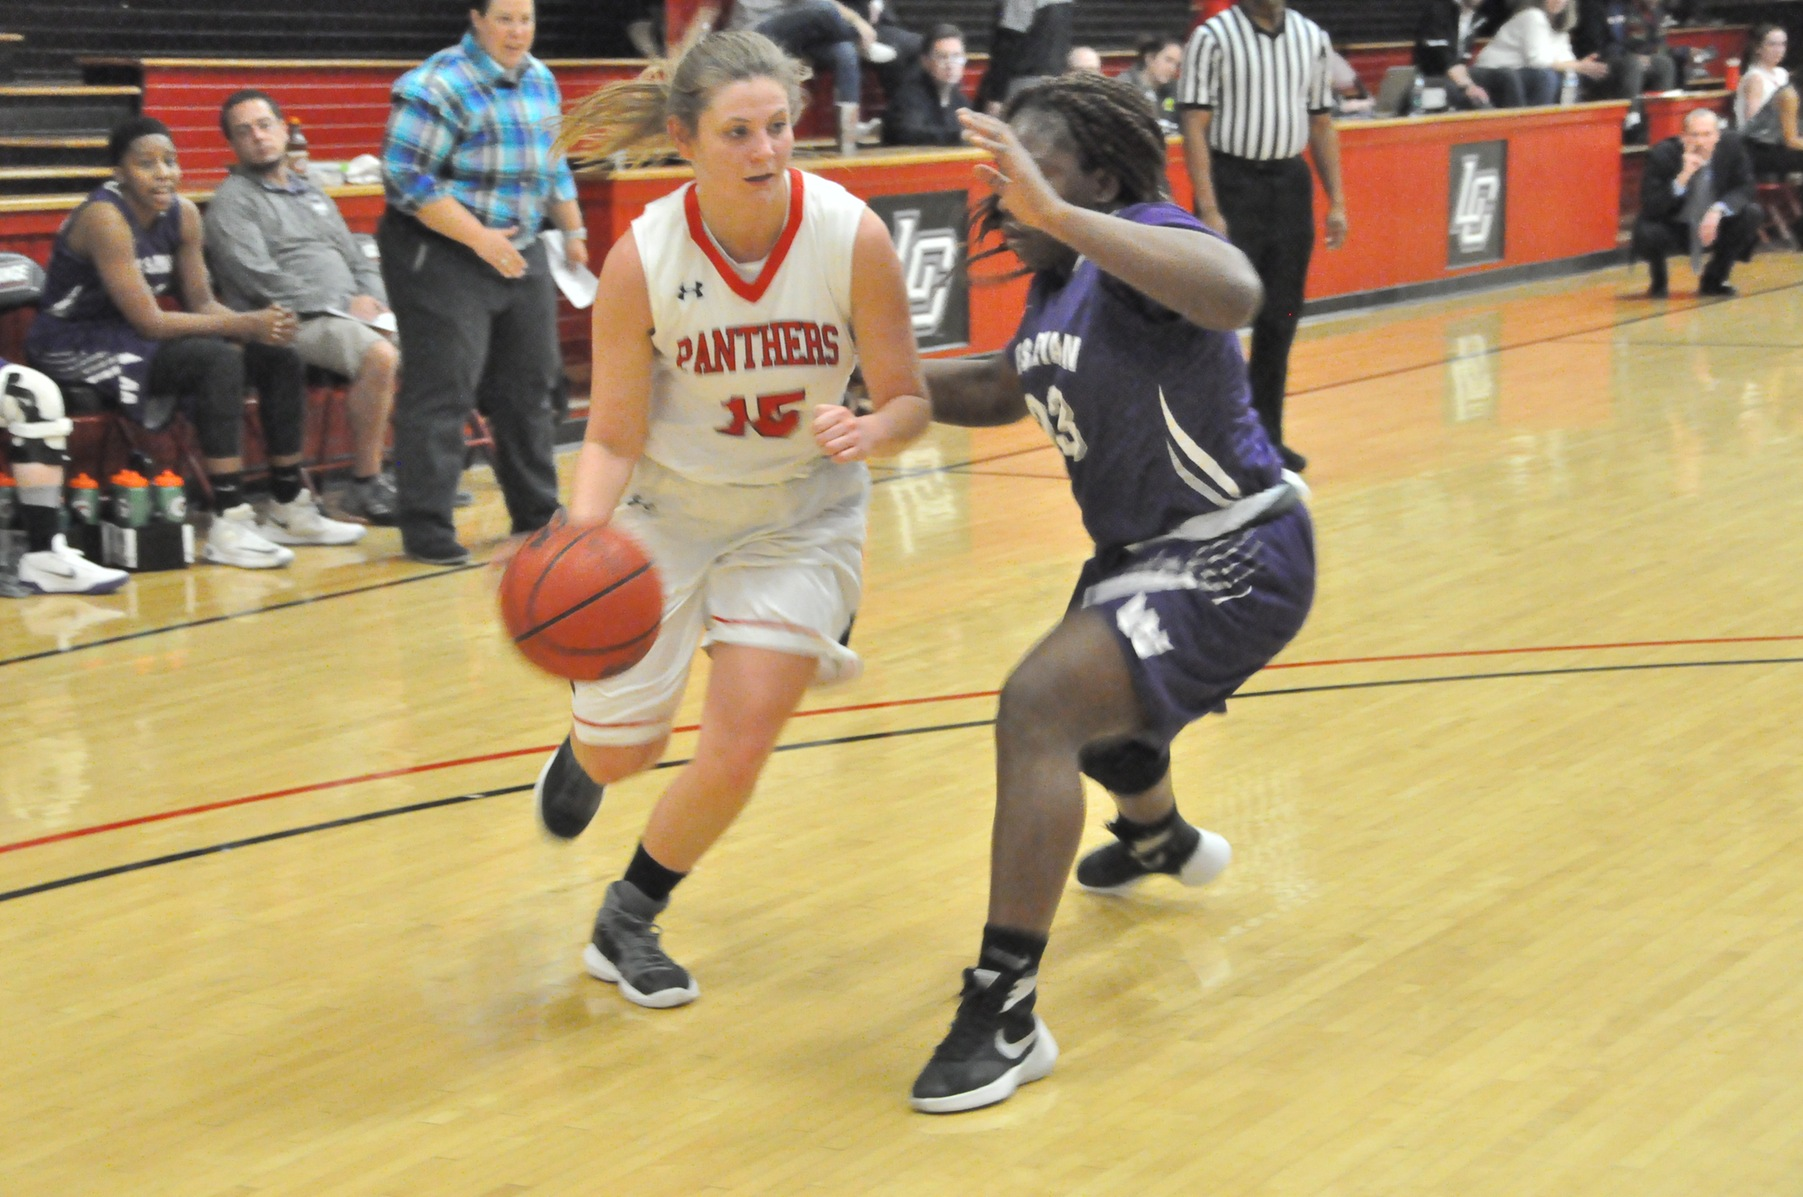 Women's Basketball: Lauren Johnson's career game leads Panthers past Wesleyan